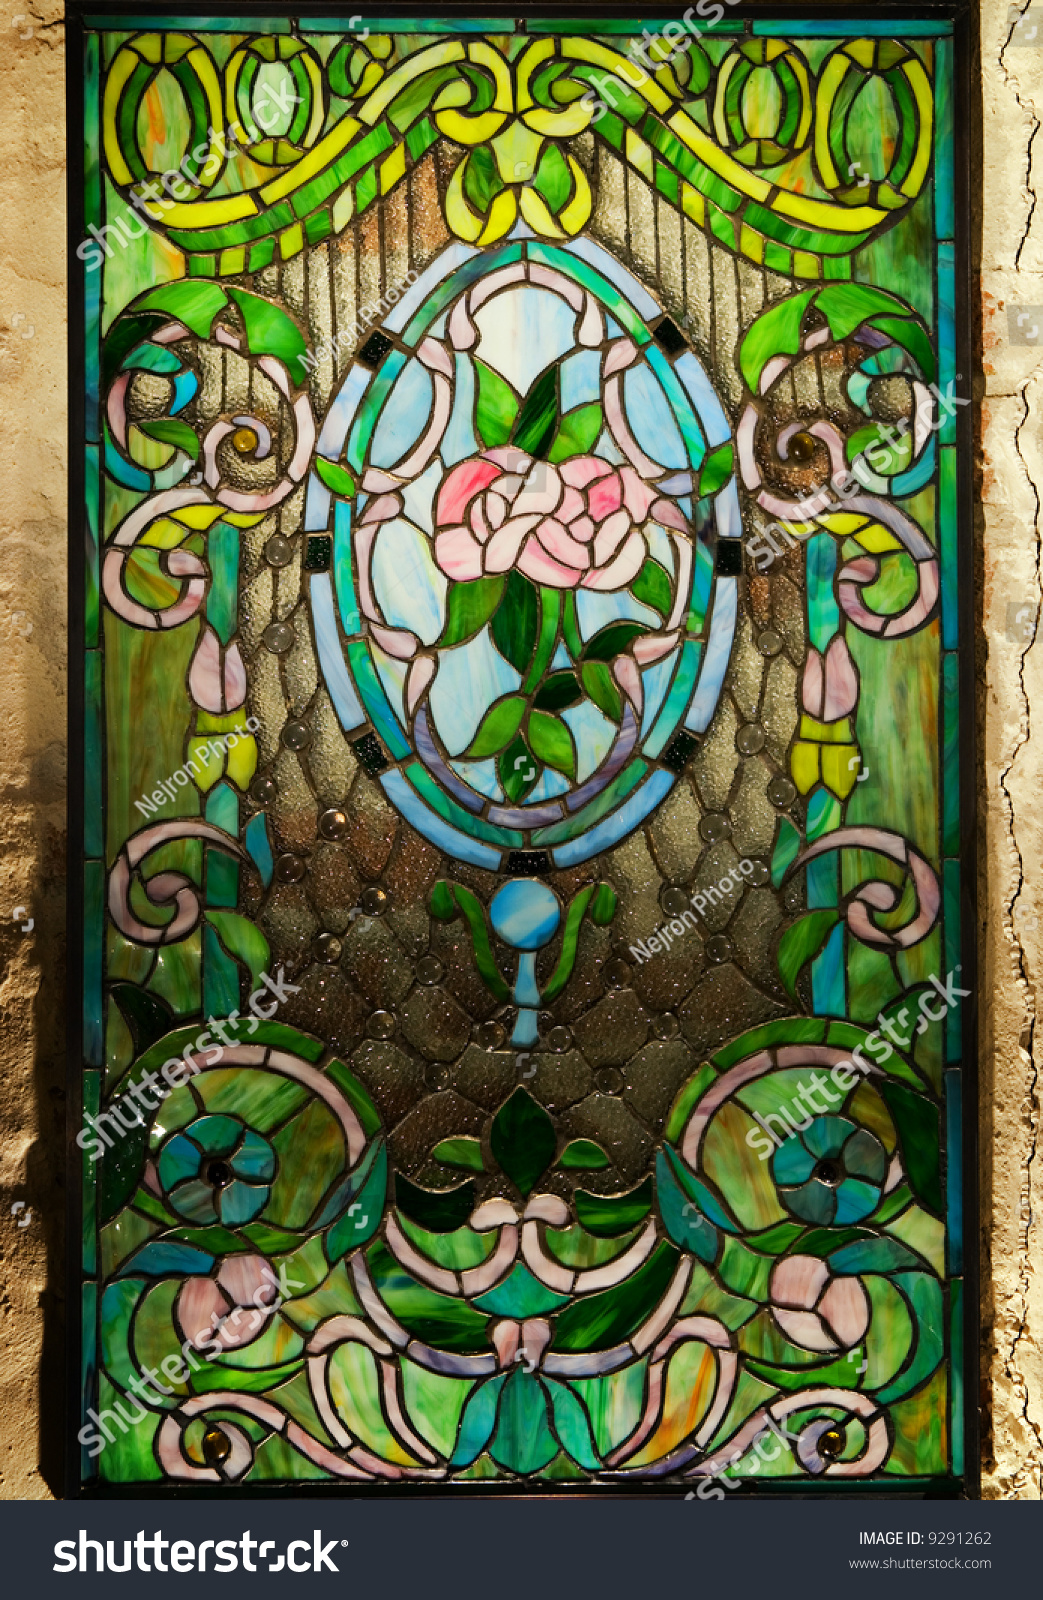 beautiful stained glass wallpaper - photo #24